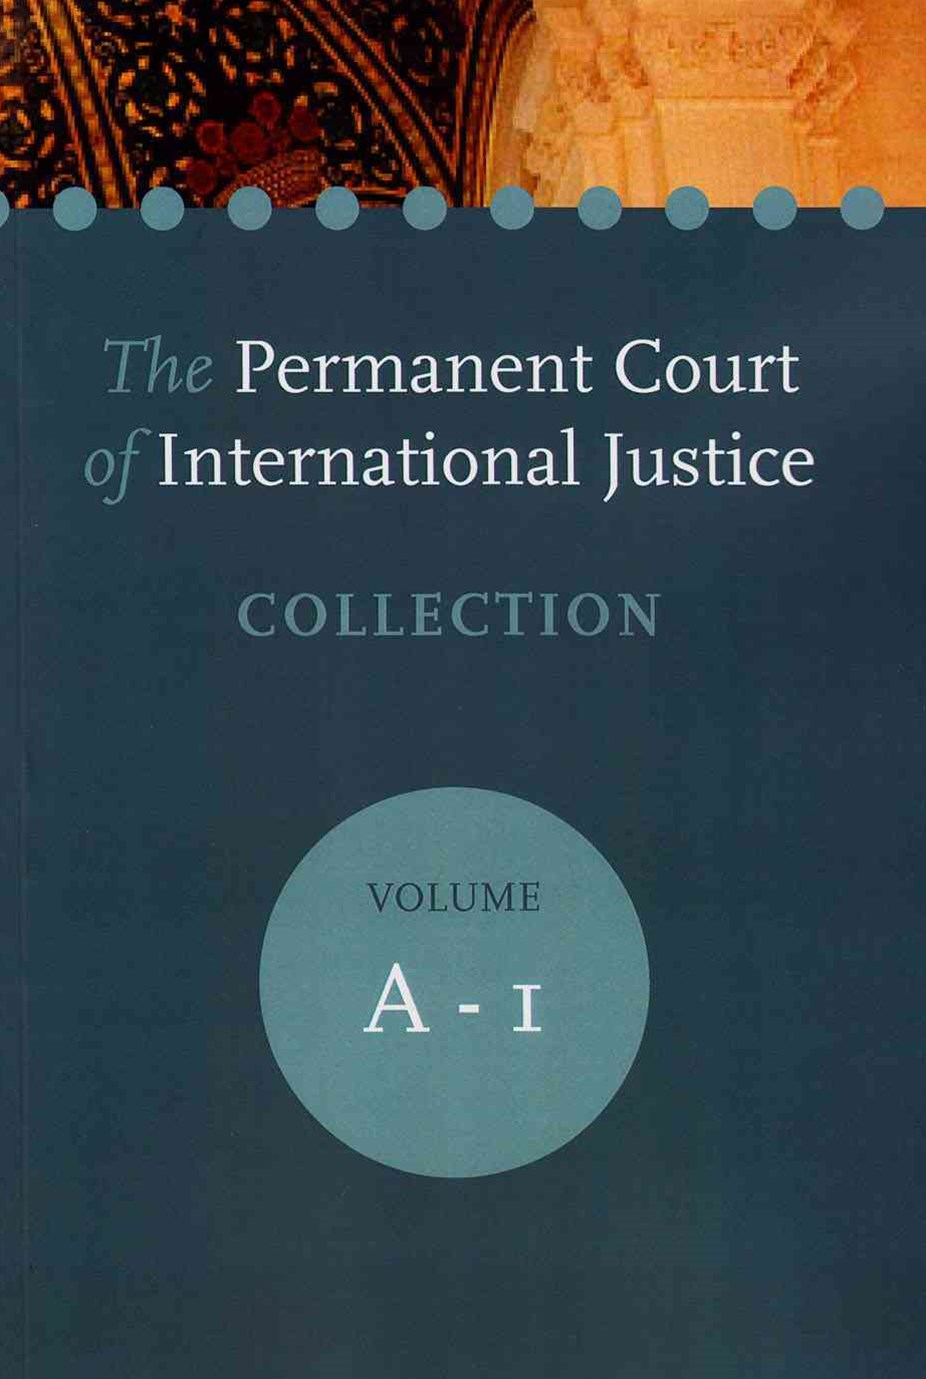 The Permanent Court of International Justice Collection